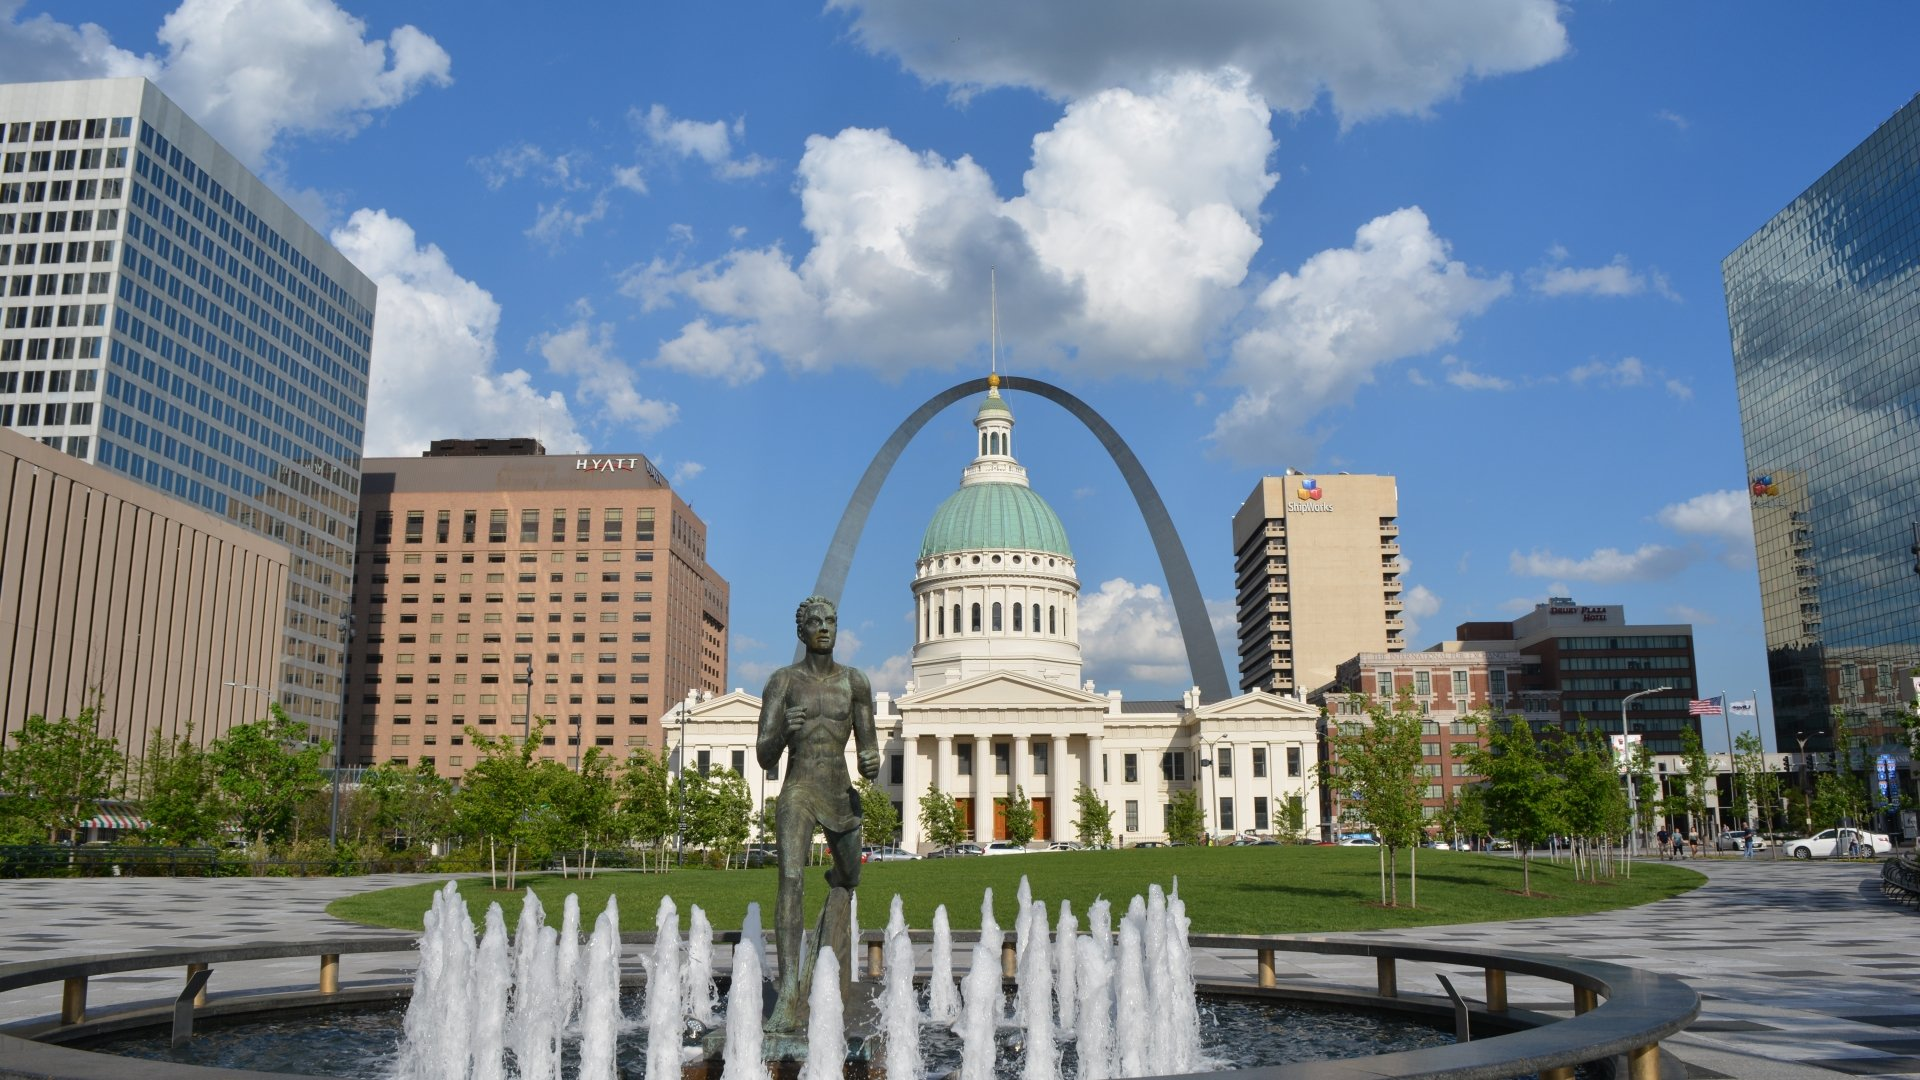 Gateway Arch National Park image by Jaclyn Hartman